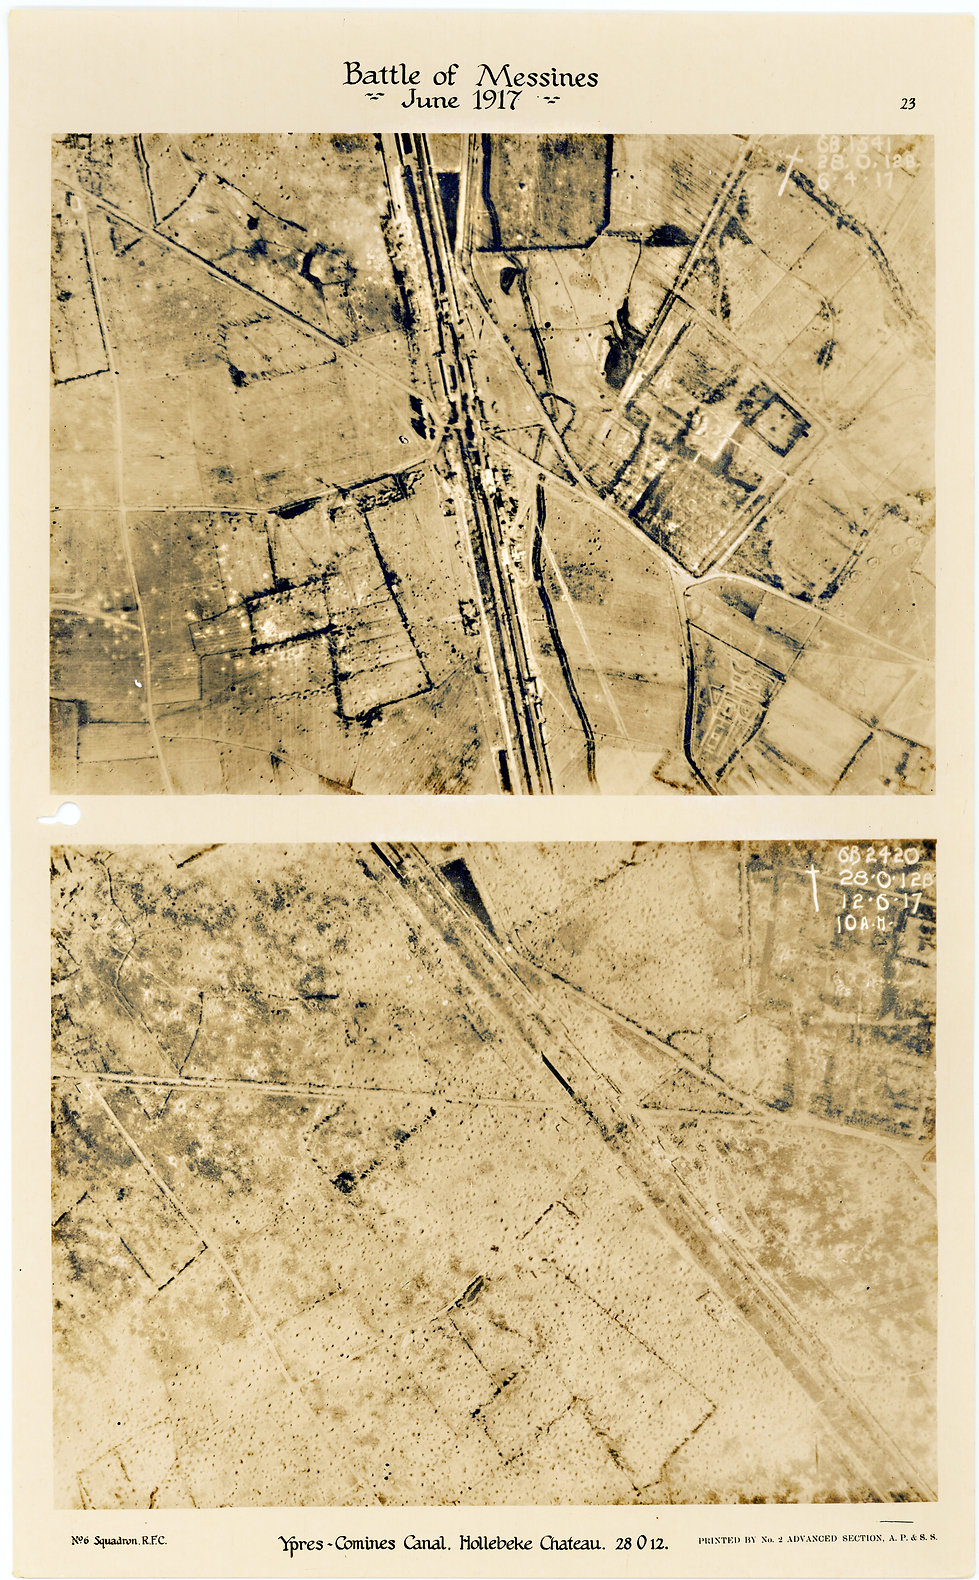 6 Squadron aerial photos of the White Chateau near Hollebeke, taken by 6 Squadron before and after the Battle of Messines, 1917